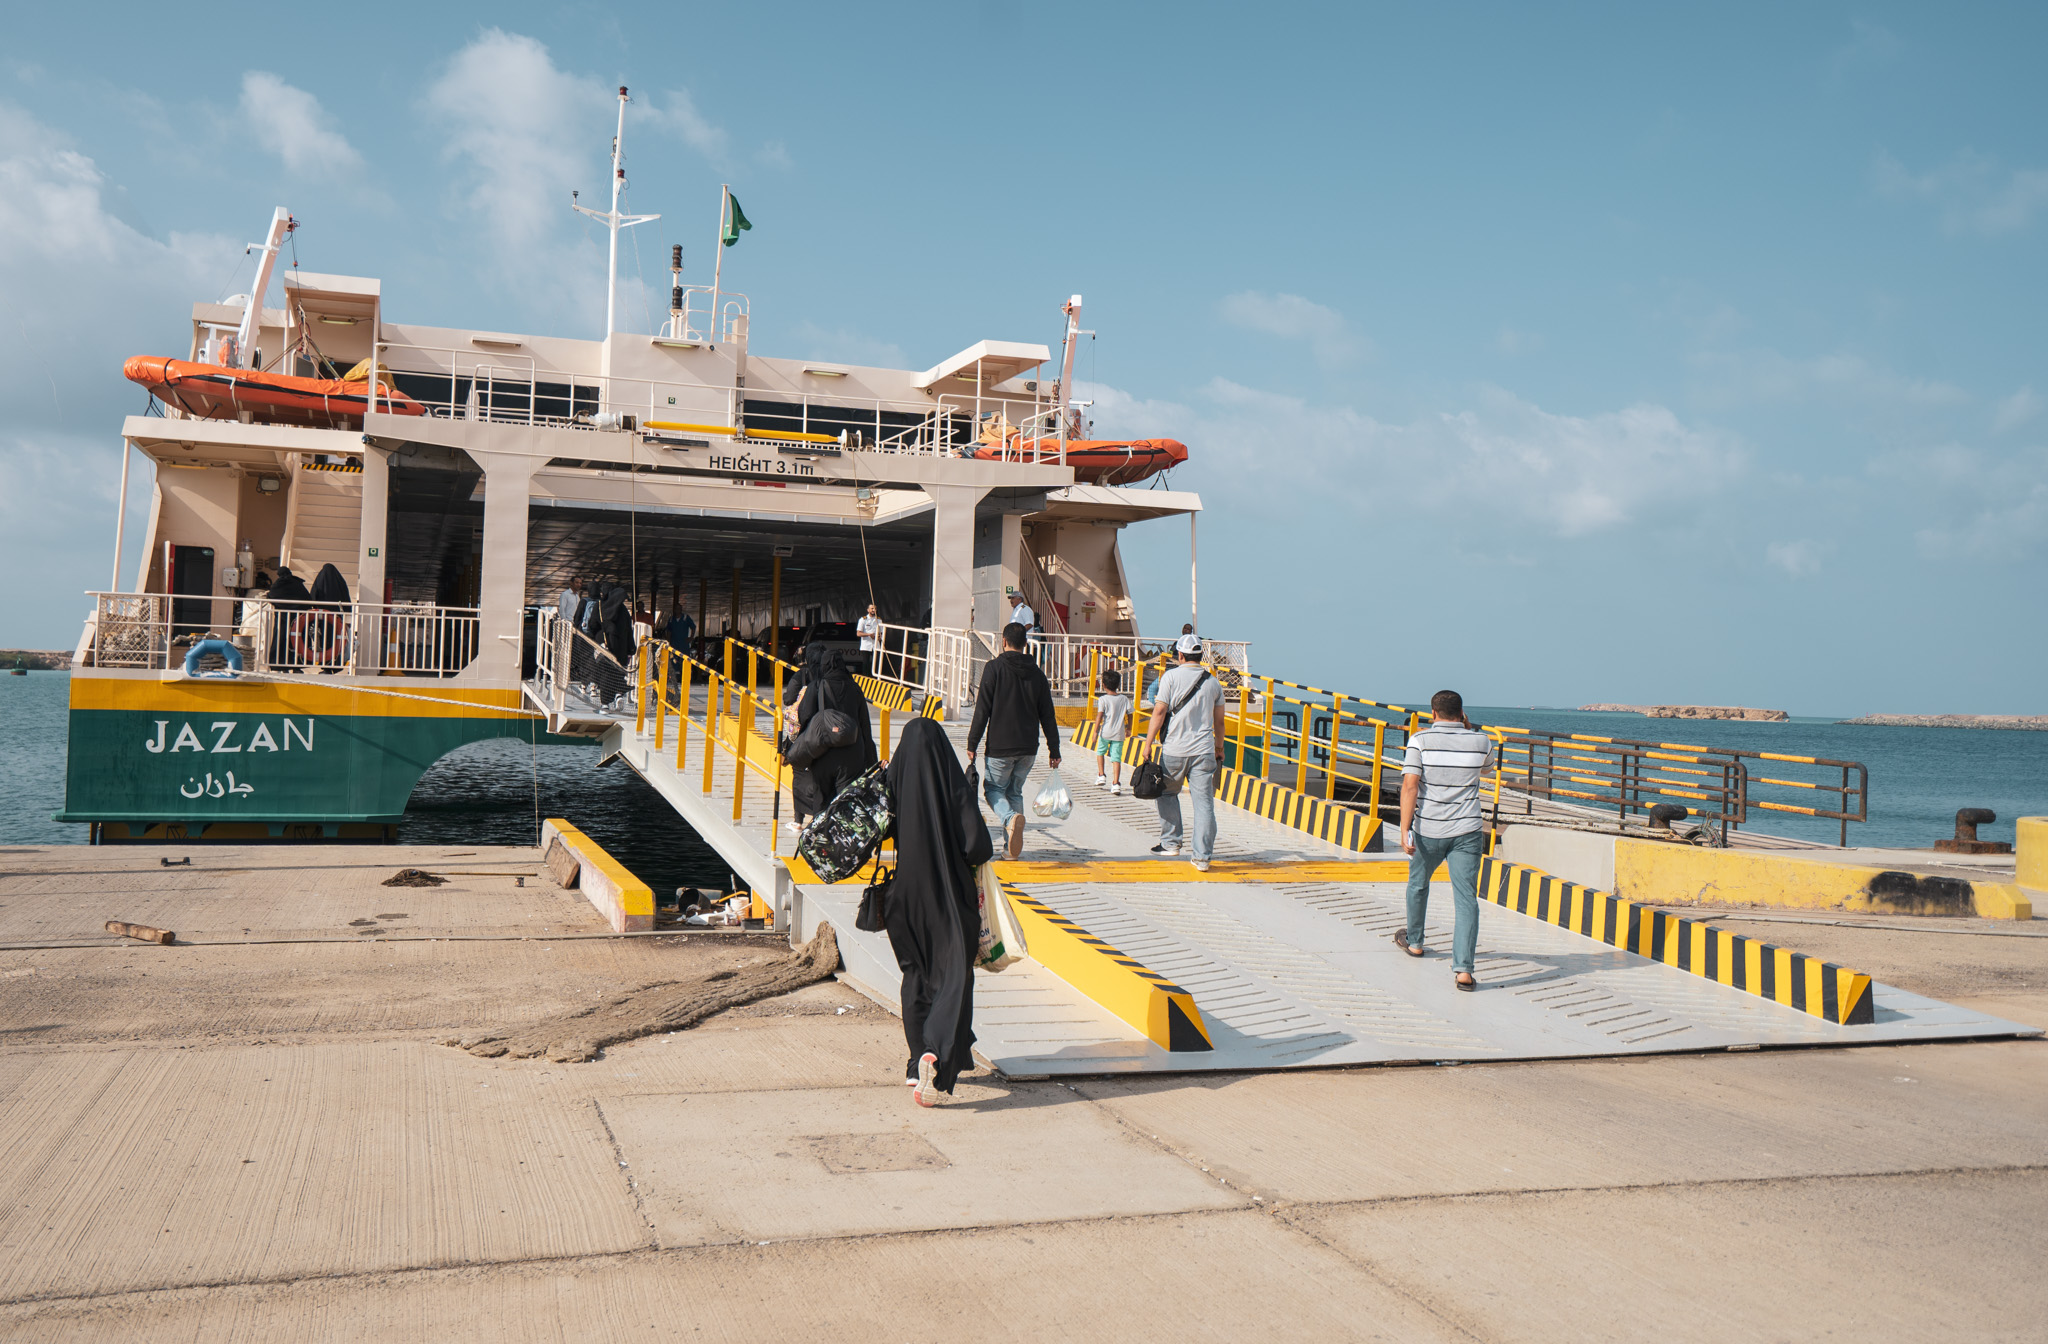 Boarding the free Farasan Islands ferry